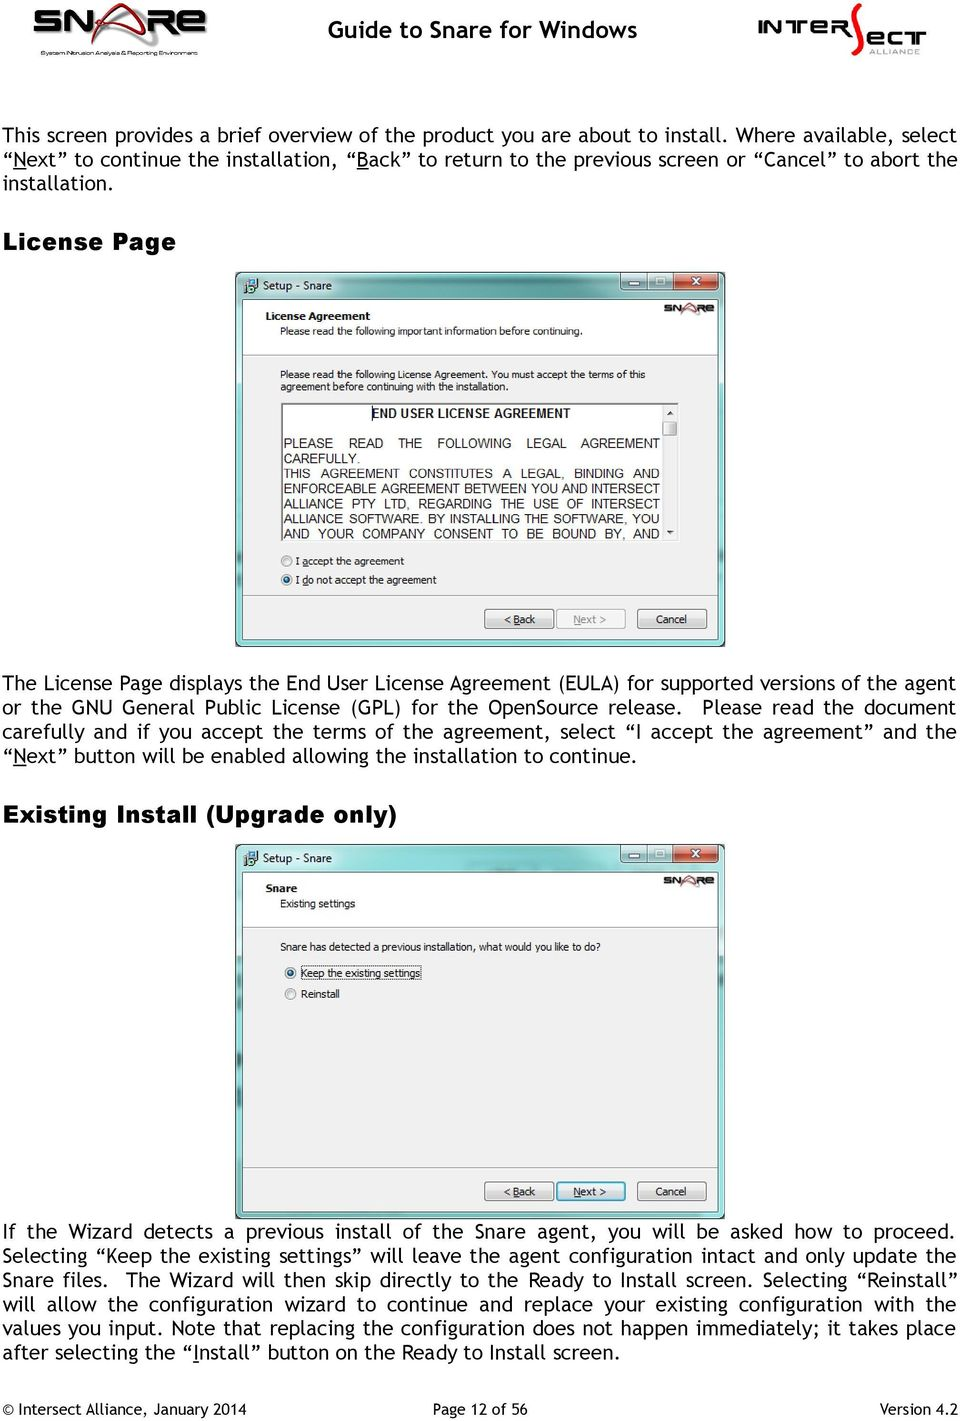 License Page The License Page displays the End User License Agreement (EULA) for supported versions of the agent or the GNU General Public License (GPL) for the OpenSource release.